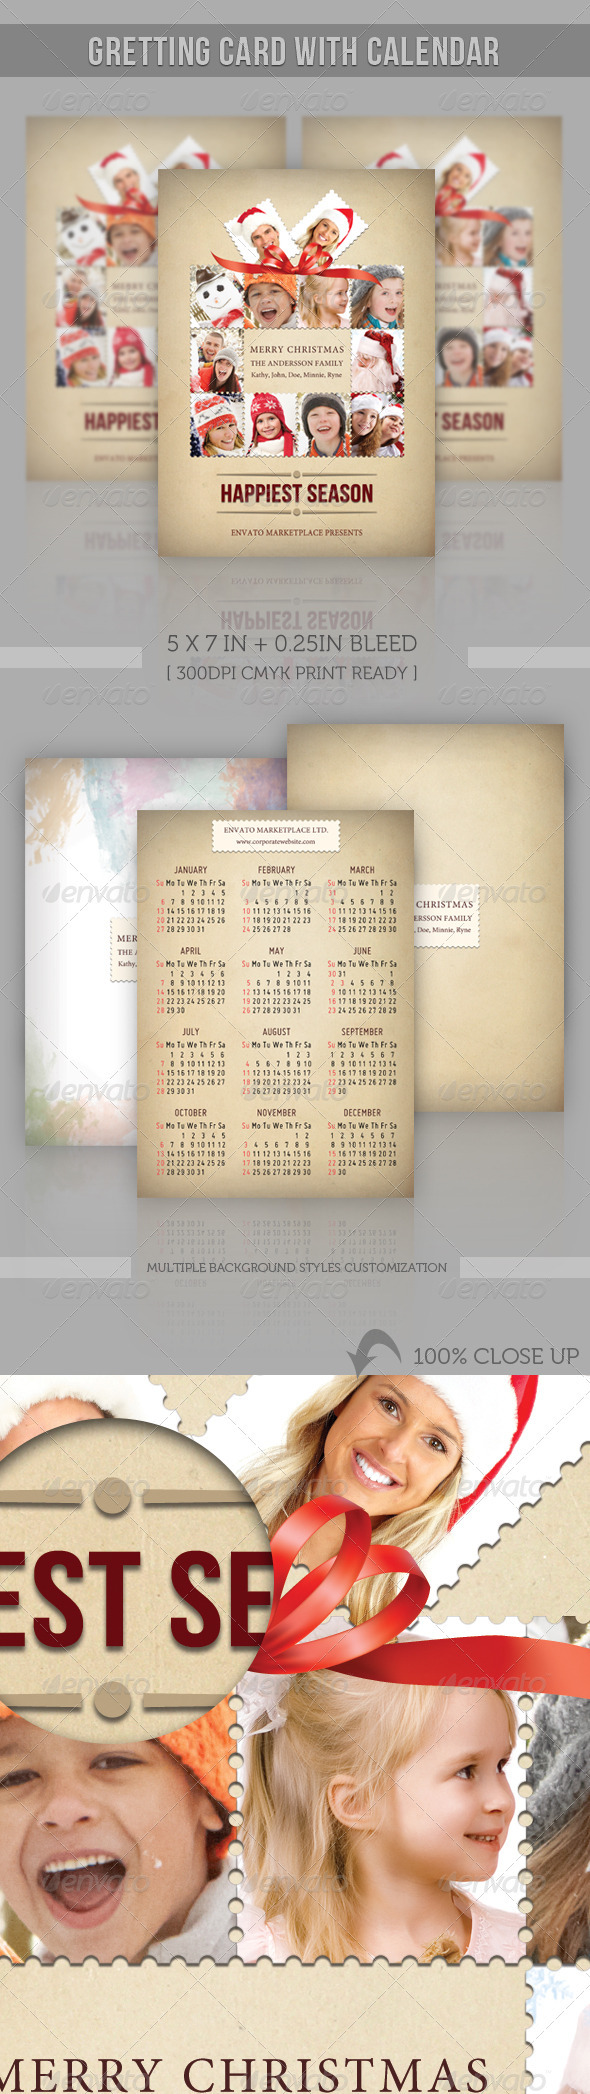 GraphicRiver Greeting Card with Calendar 3196144